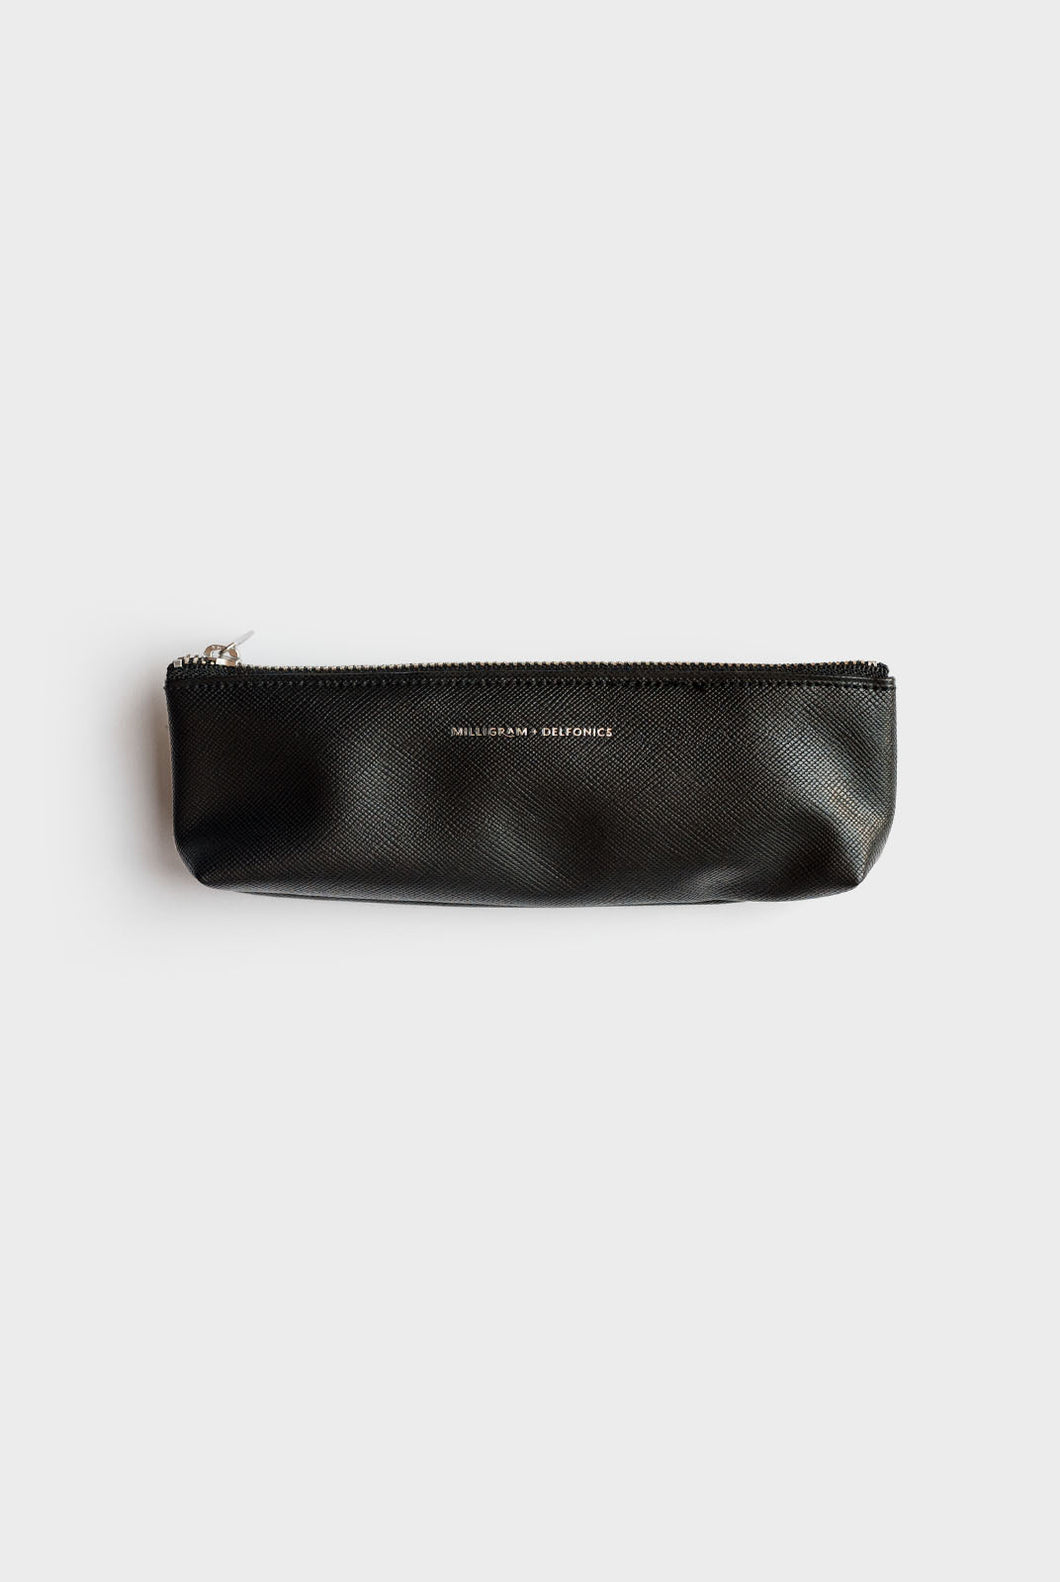 Milligram + Delfonics Collaboration - Pencil Case - Black